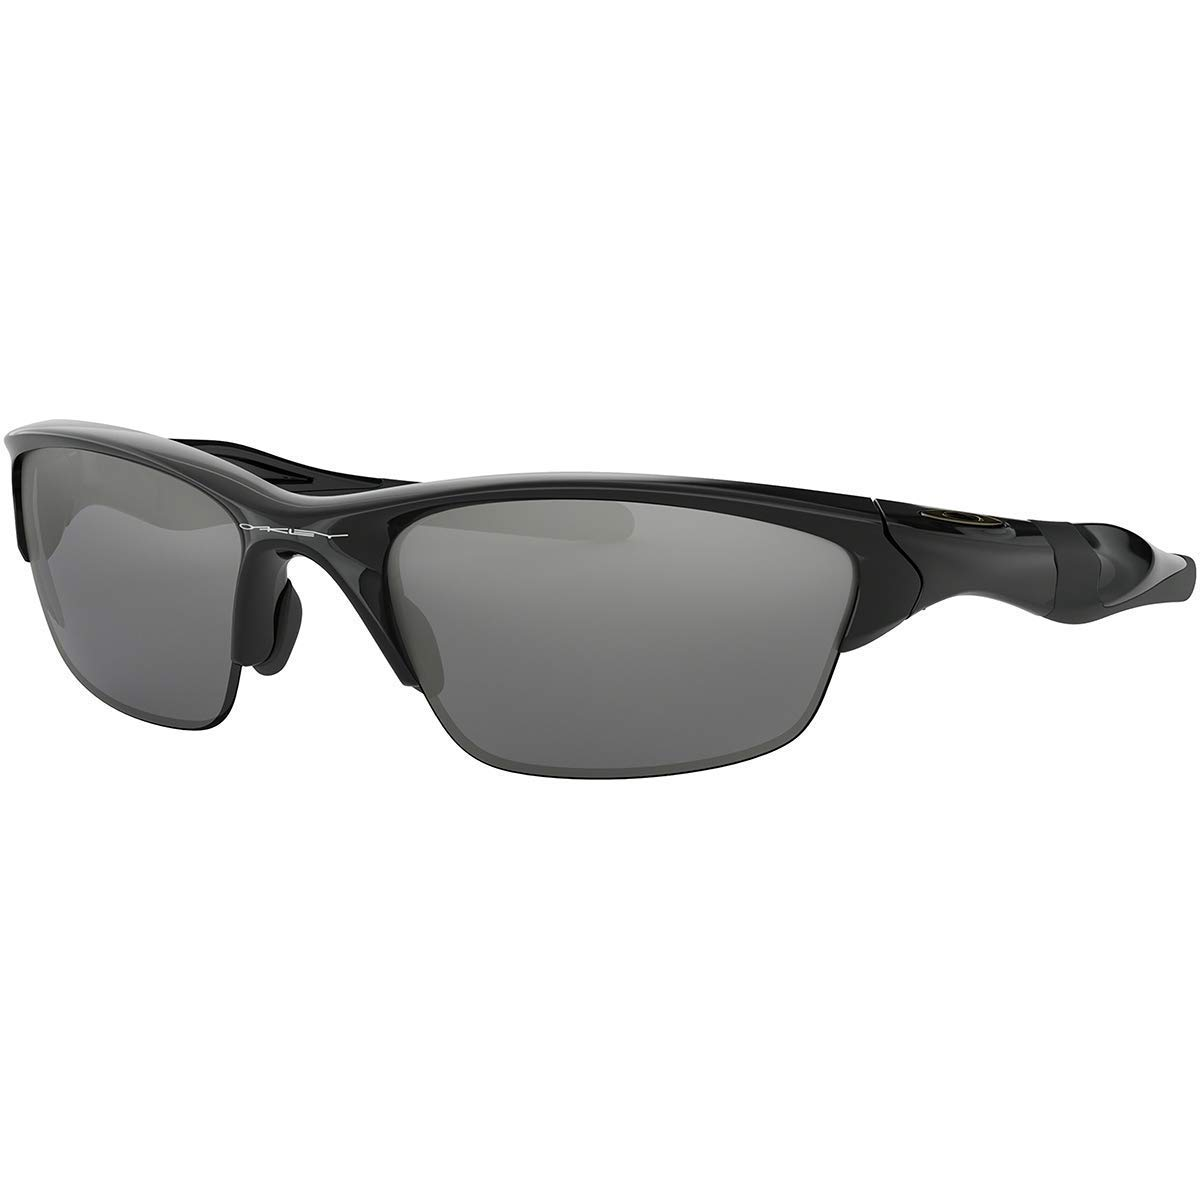 dc8890a4468 Amazon.com  Oakley Half Jacket 2.0 Adult Sport Designer Sunglasses ...